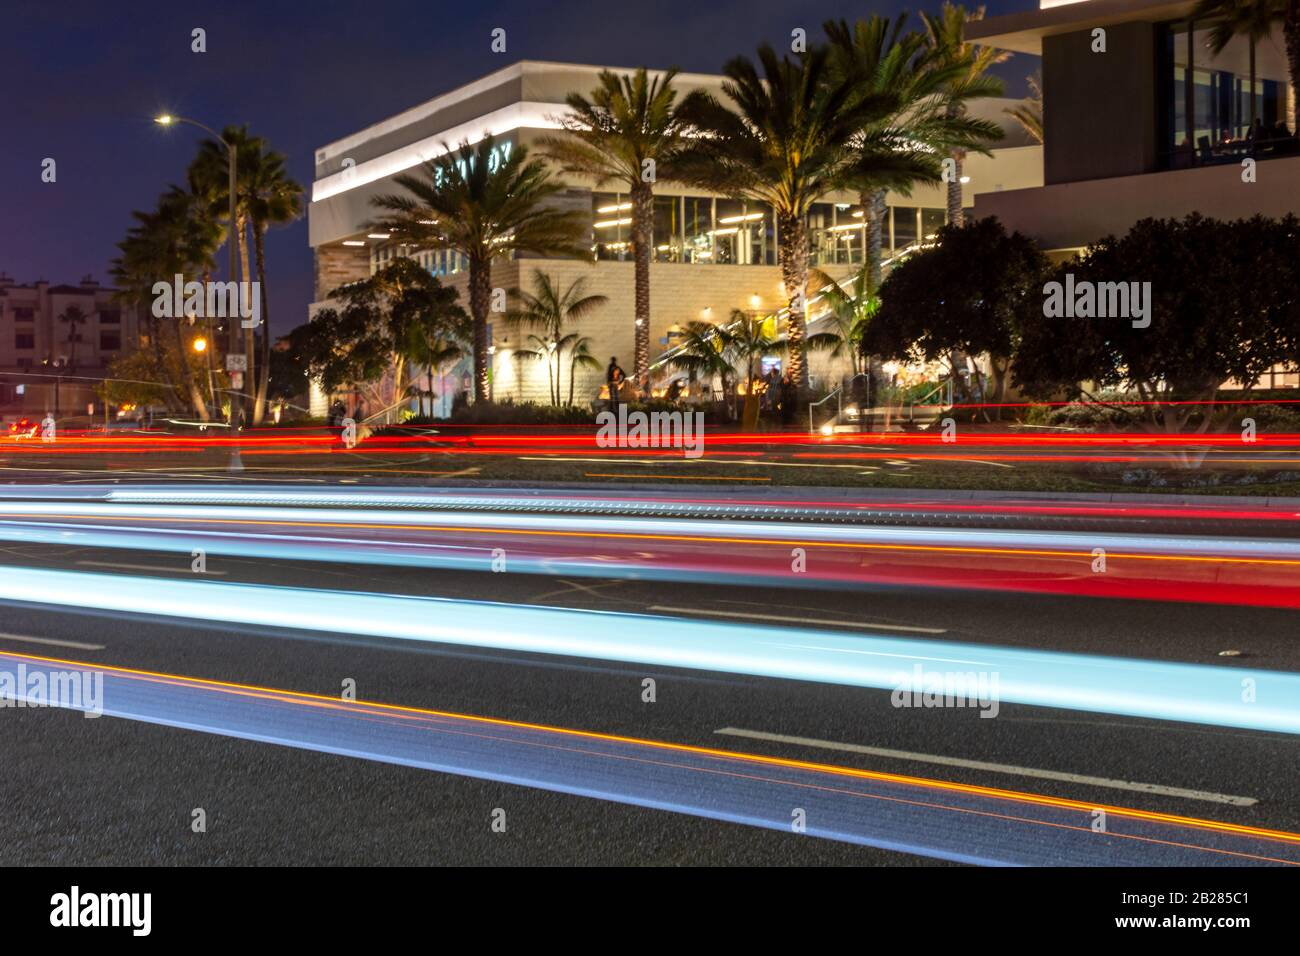 Colorful light trails on a city road in front of illuminated buildings at night. Stock Photo